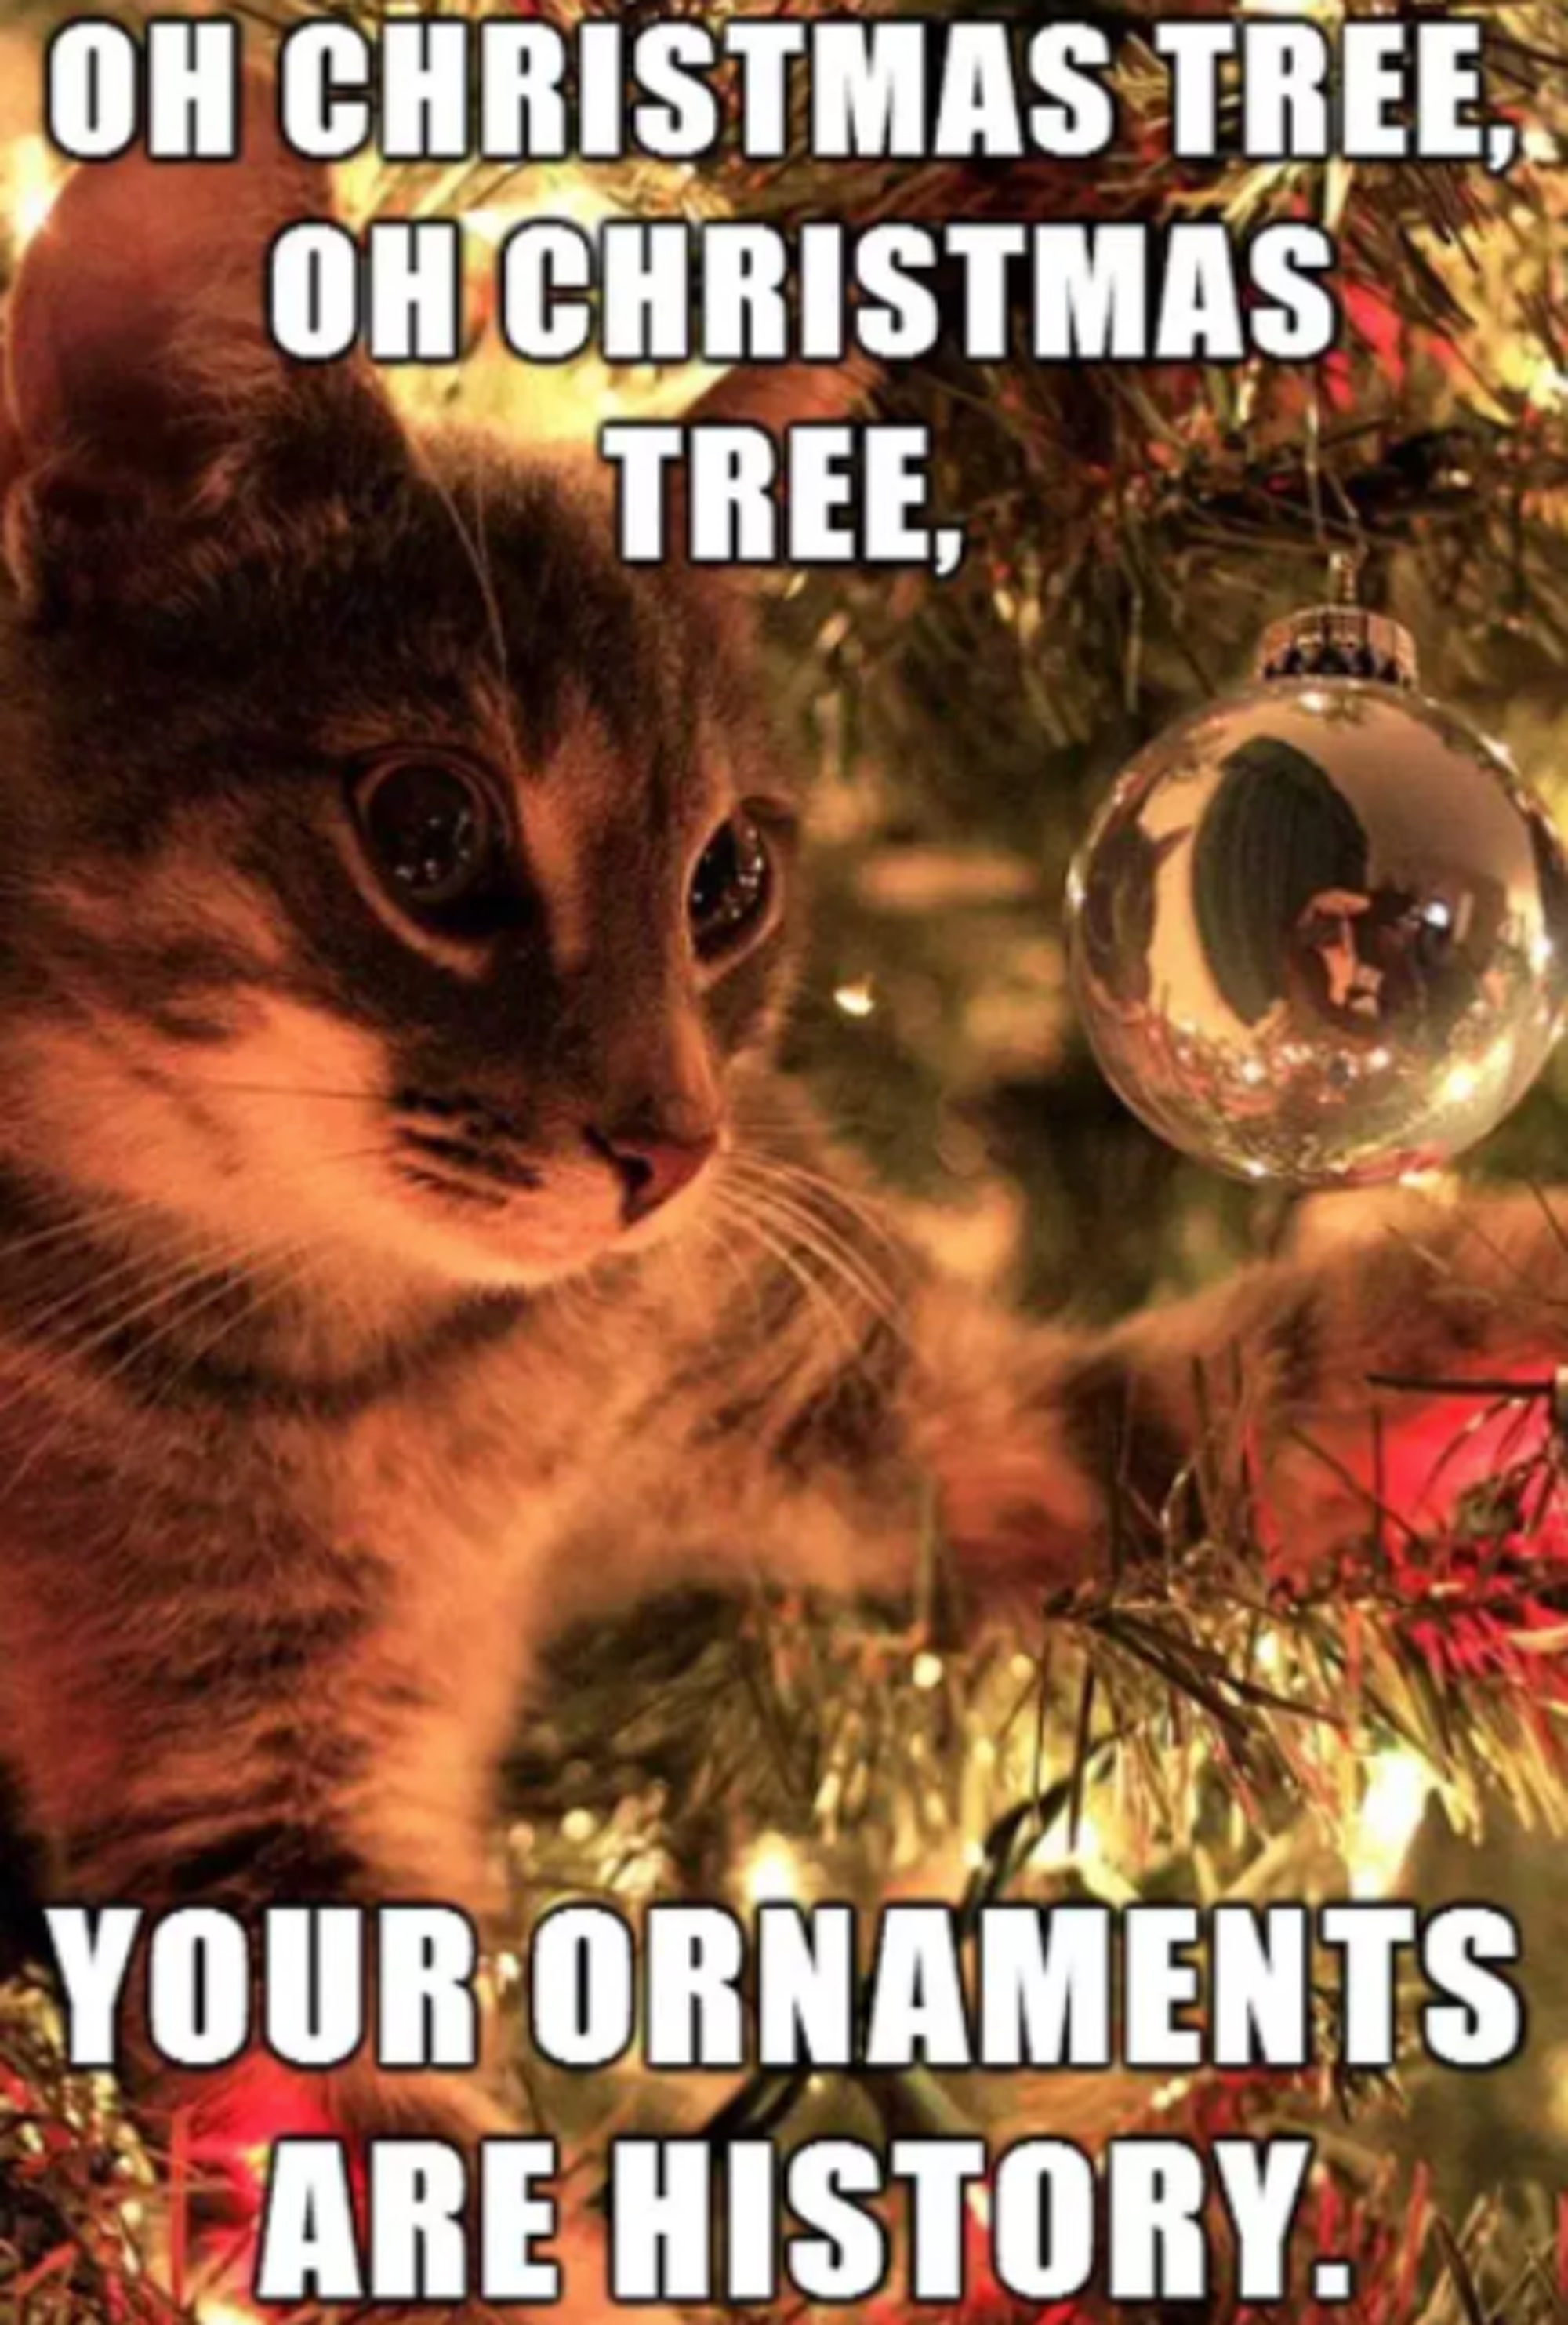 20 Funny Christmas 2017 Memes To Get You Into The Holly Jolly Holiday Spirit Christmas Memes Funny Funny Christmas Pictures Christmas Cat Memes